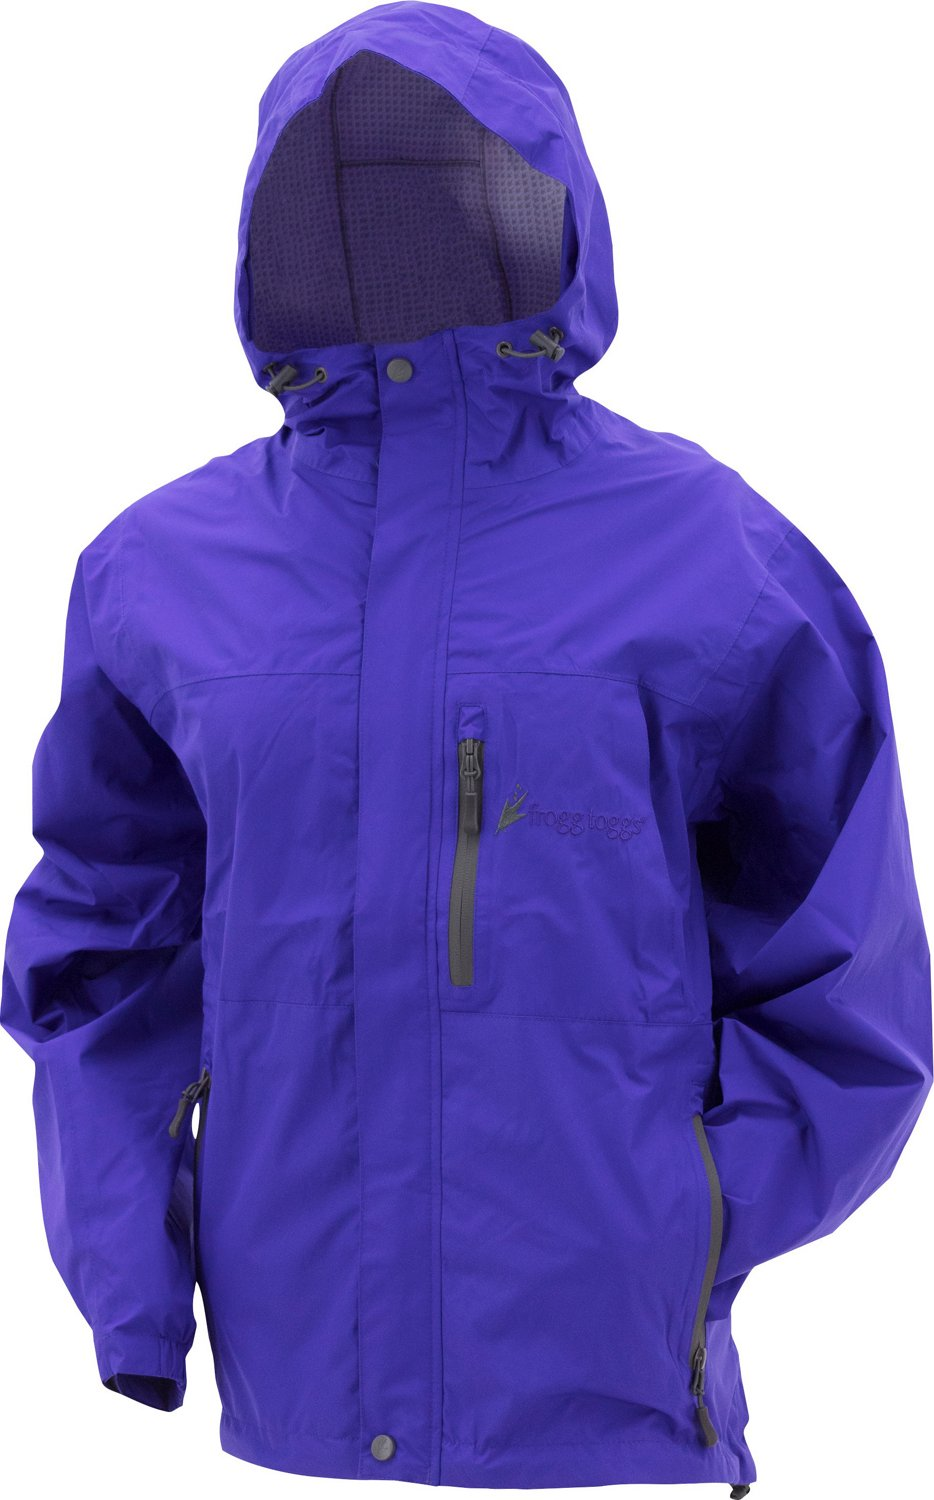 b1d646375fa5b Display product reviews for Frogg Toggs Women s Java ToadZ 2.5 Jacket